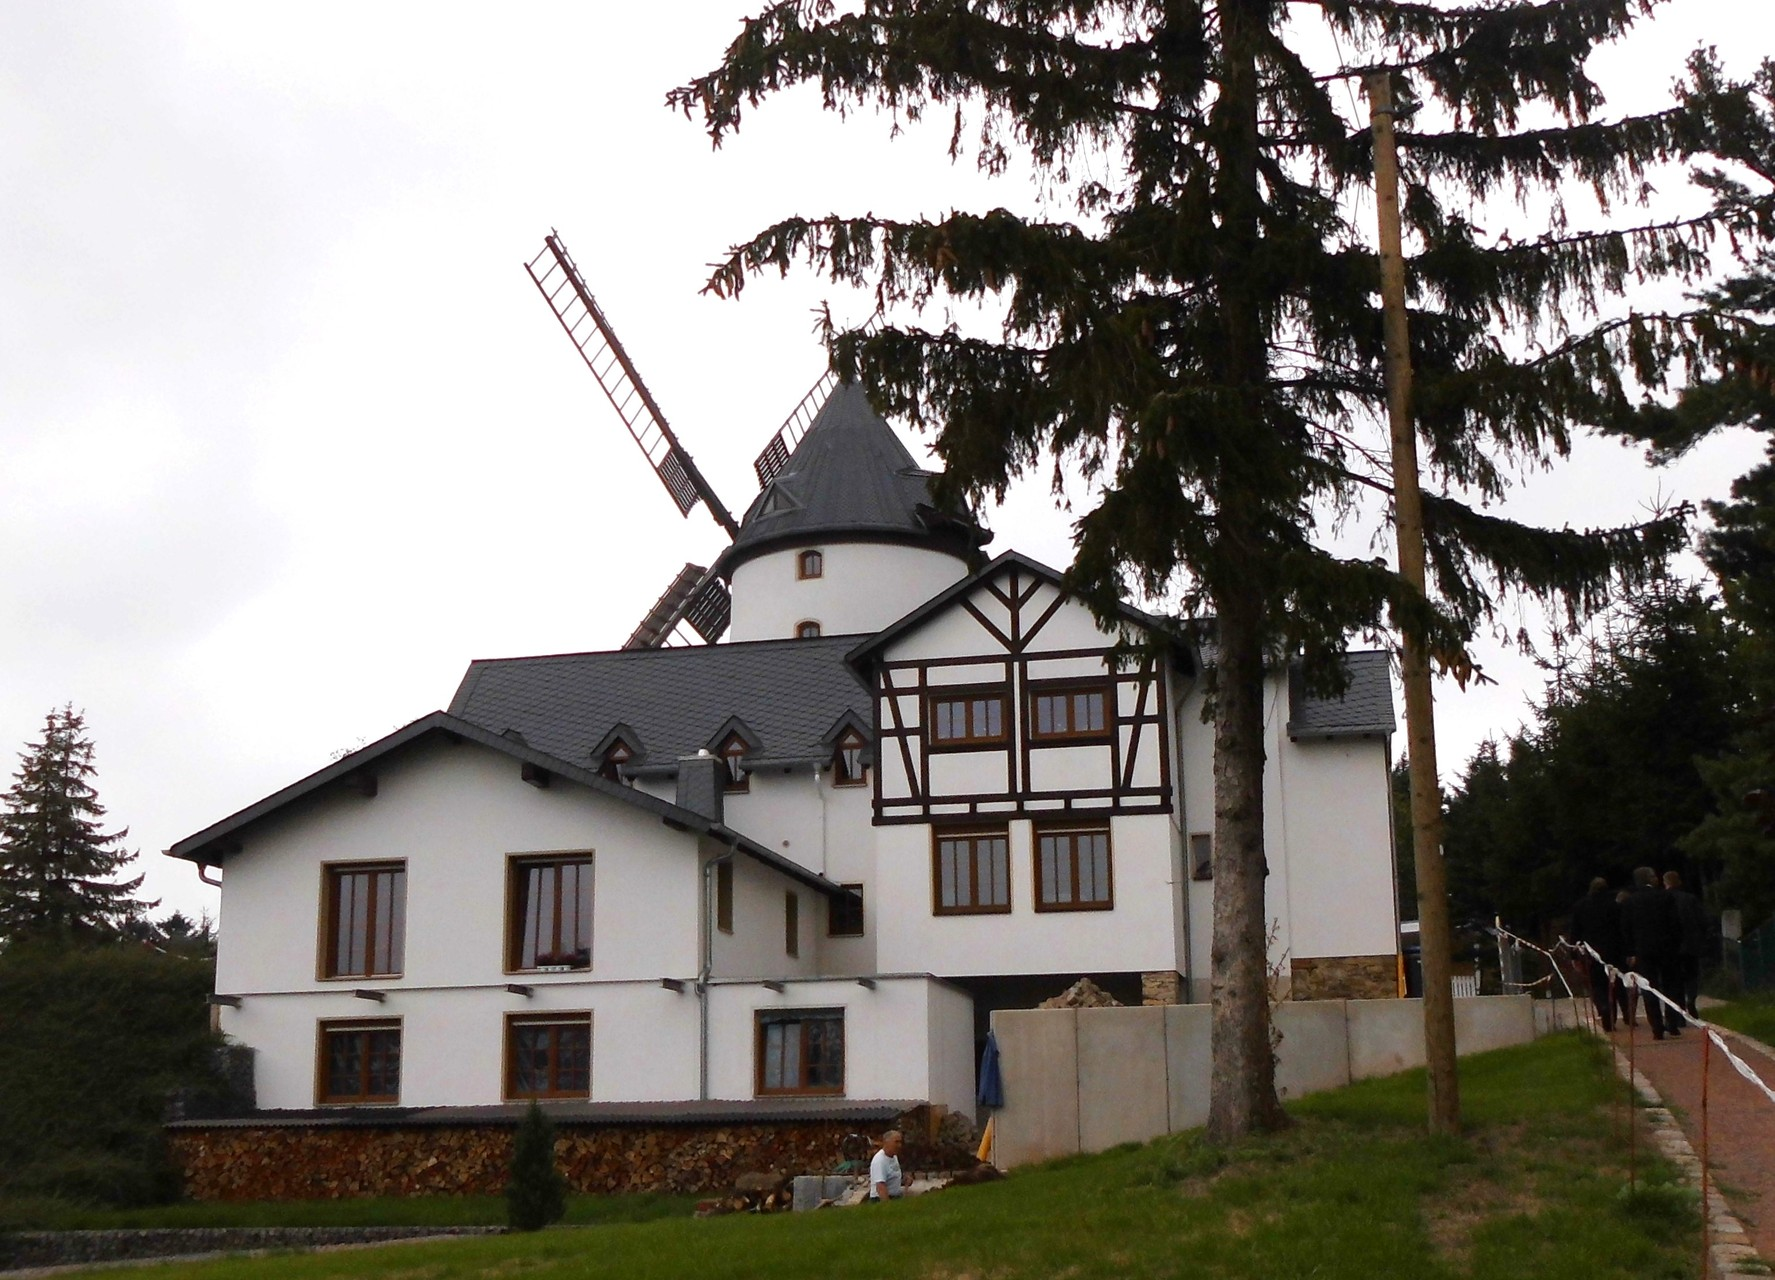 Holländerwindmühle in Possendorf